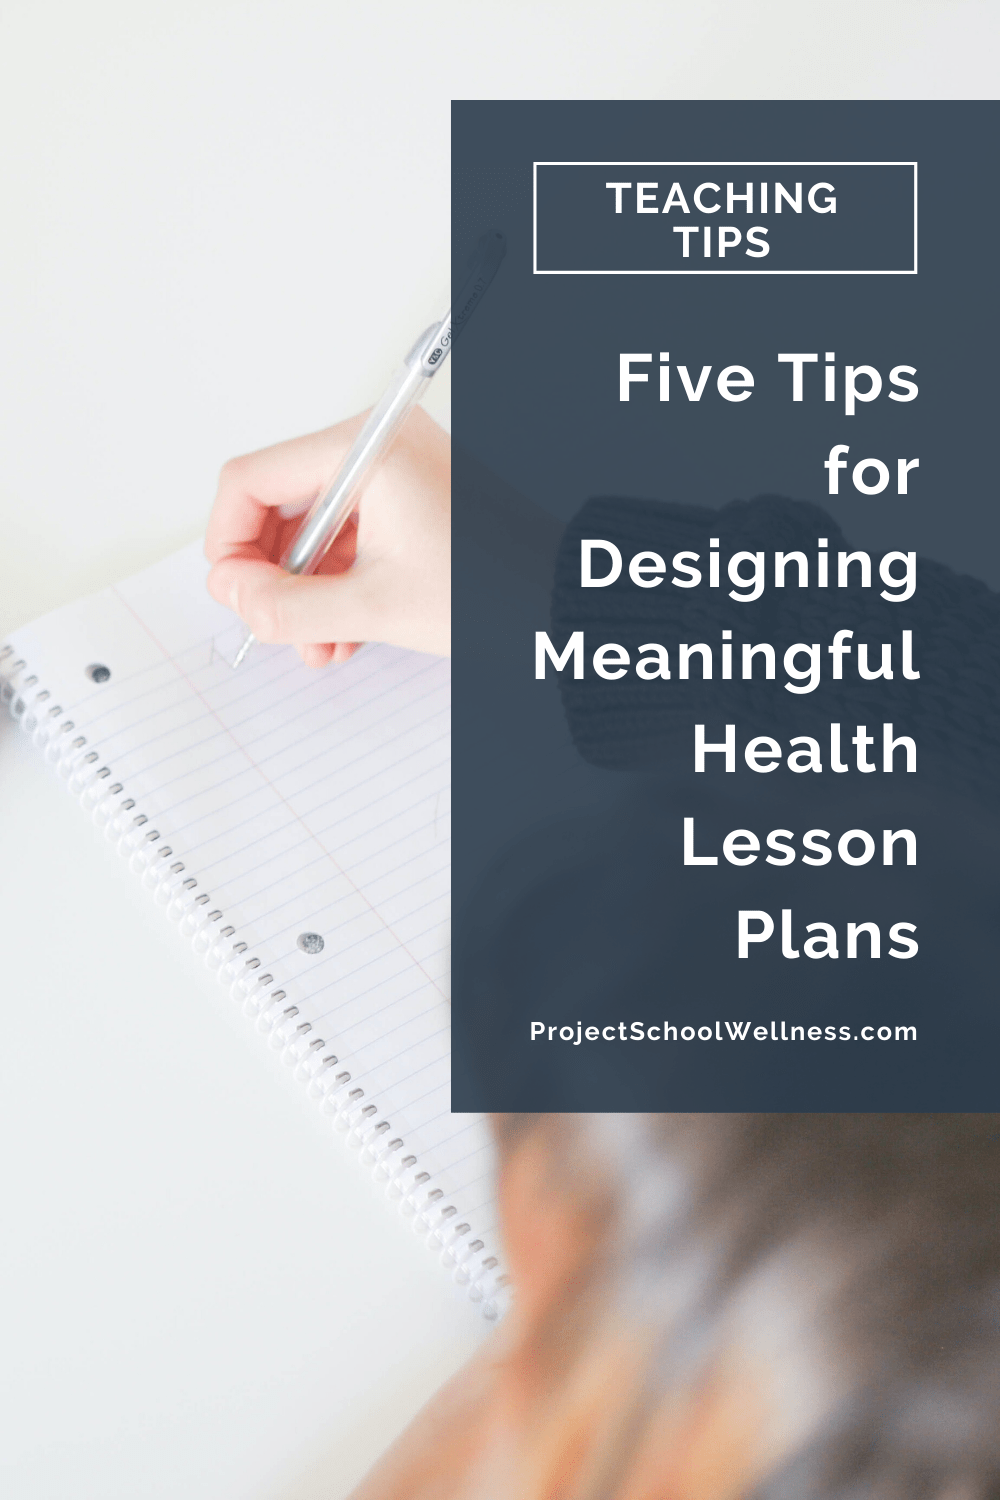 Health Teaching Tips - Five Tips for Designing Meaningful Health lesson Plans - Tips from Janelle of Project School Wellness